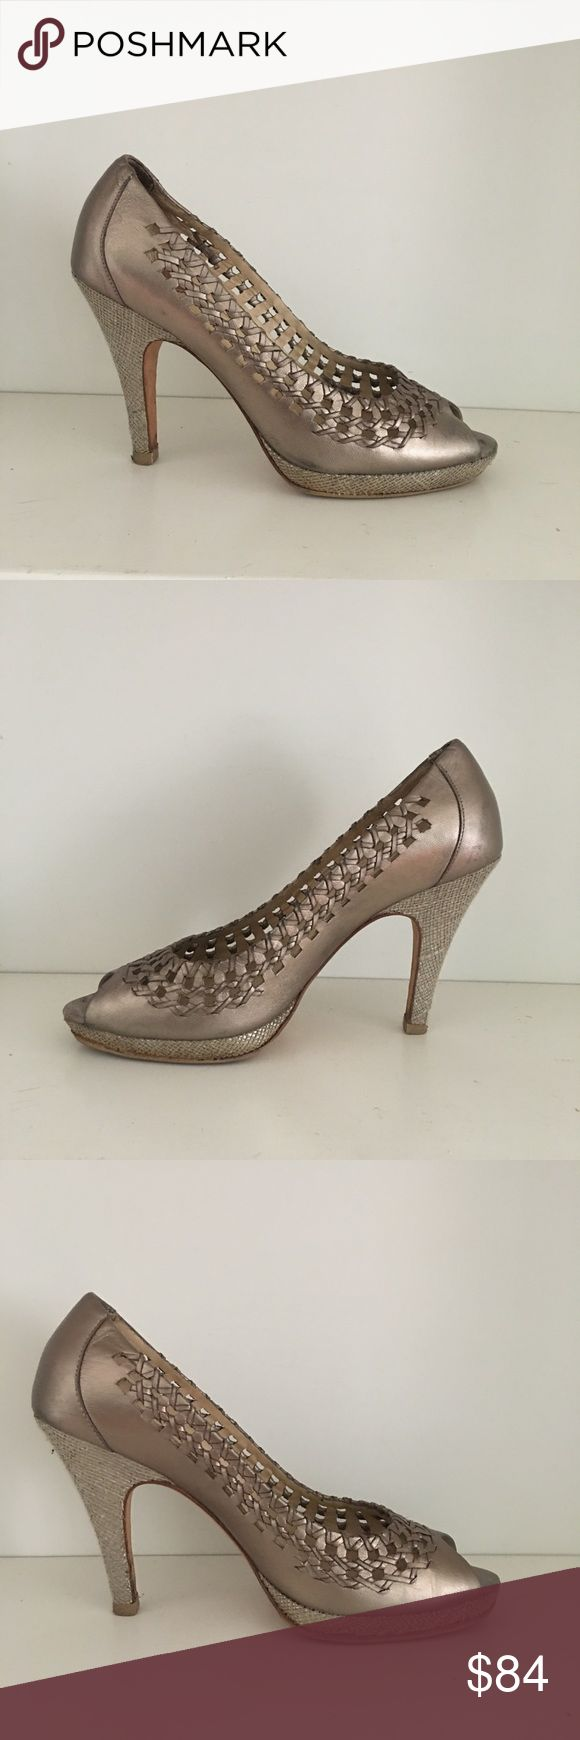 Cole Haan Nike Air gold peep toe heels Good condition Cole Haan super comfy pumps with Braided leather details.  Slight wear shows on the heels but no major flaws. Cole Haan Shoes Heels